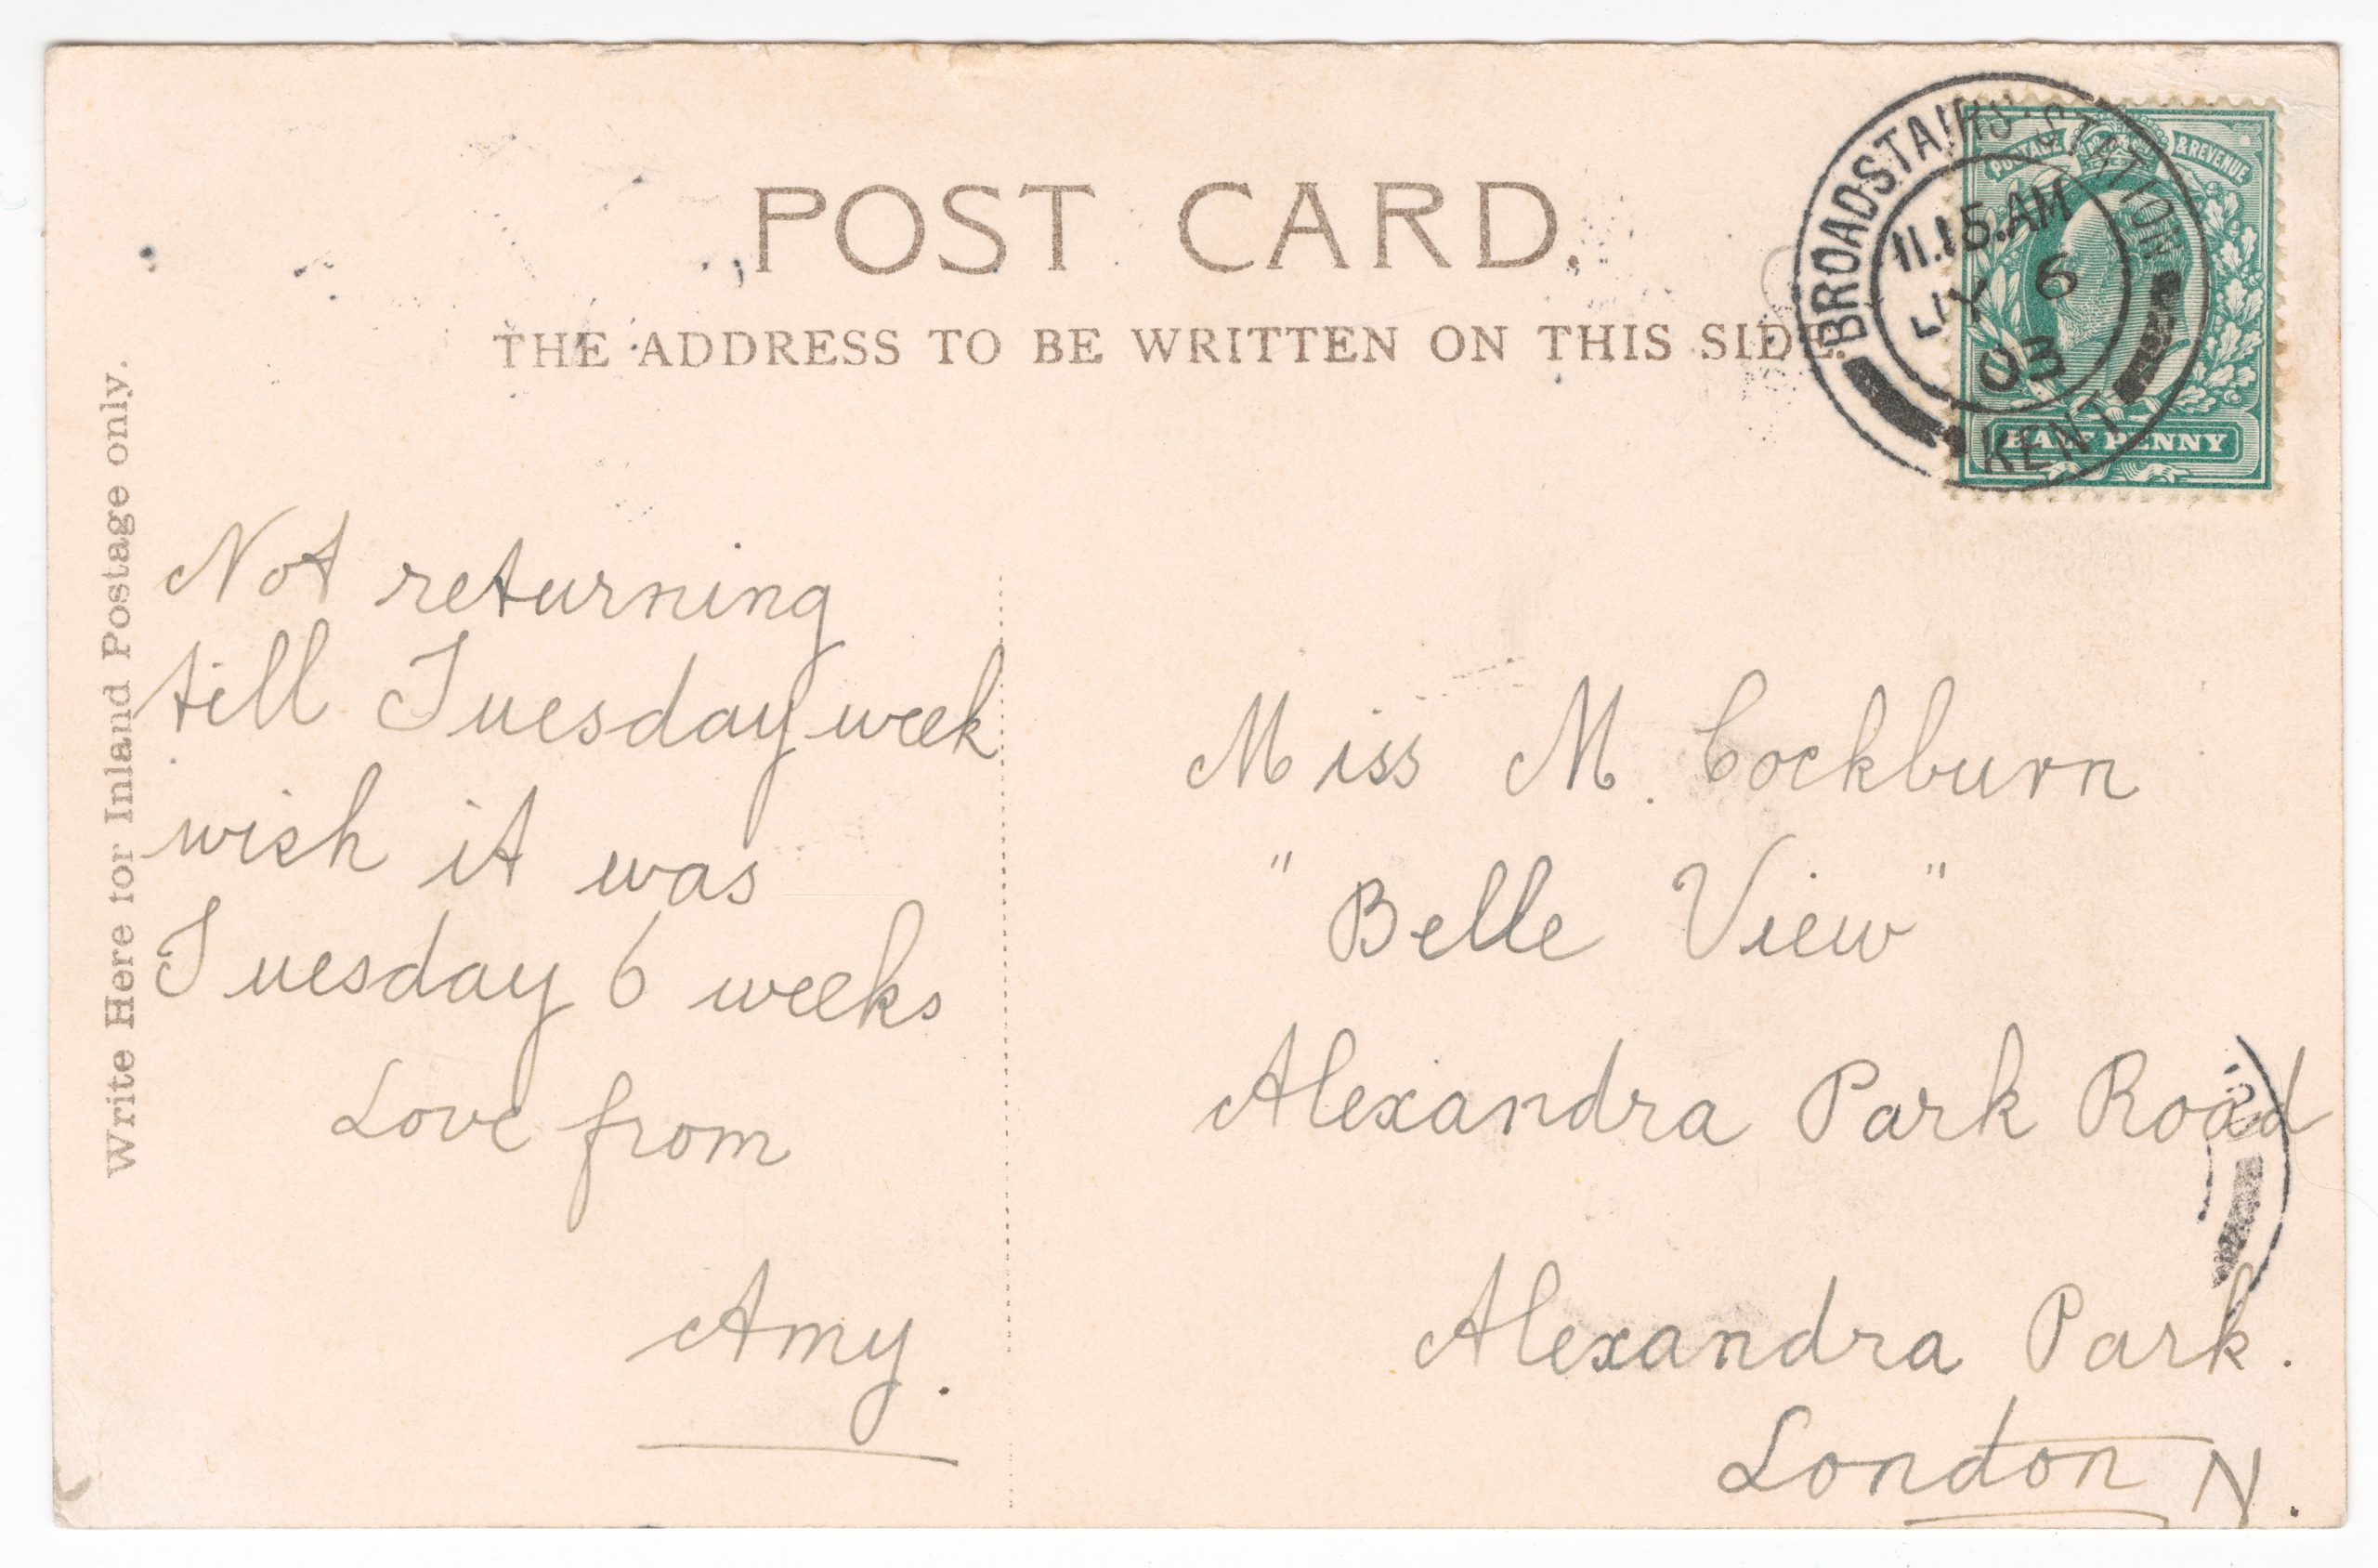 Handwritten postcard message with stamp cancelled from Broadstairs Station.